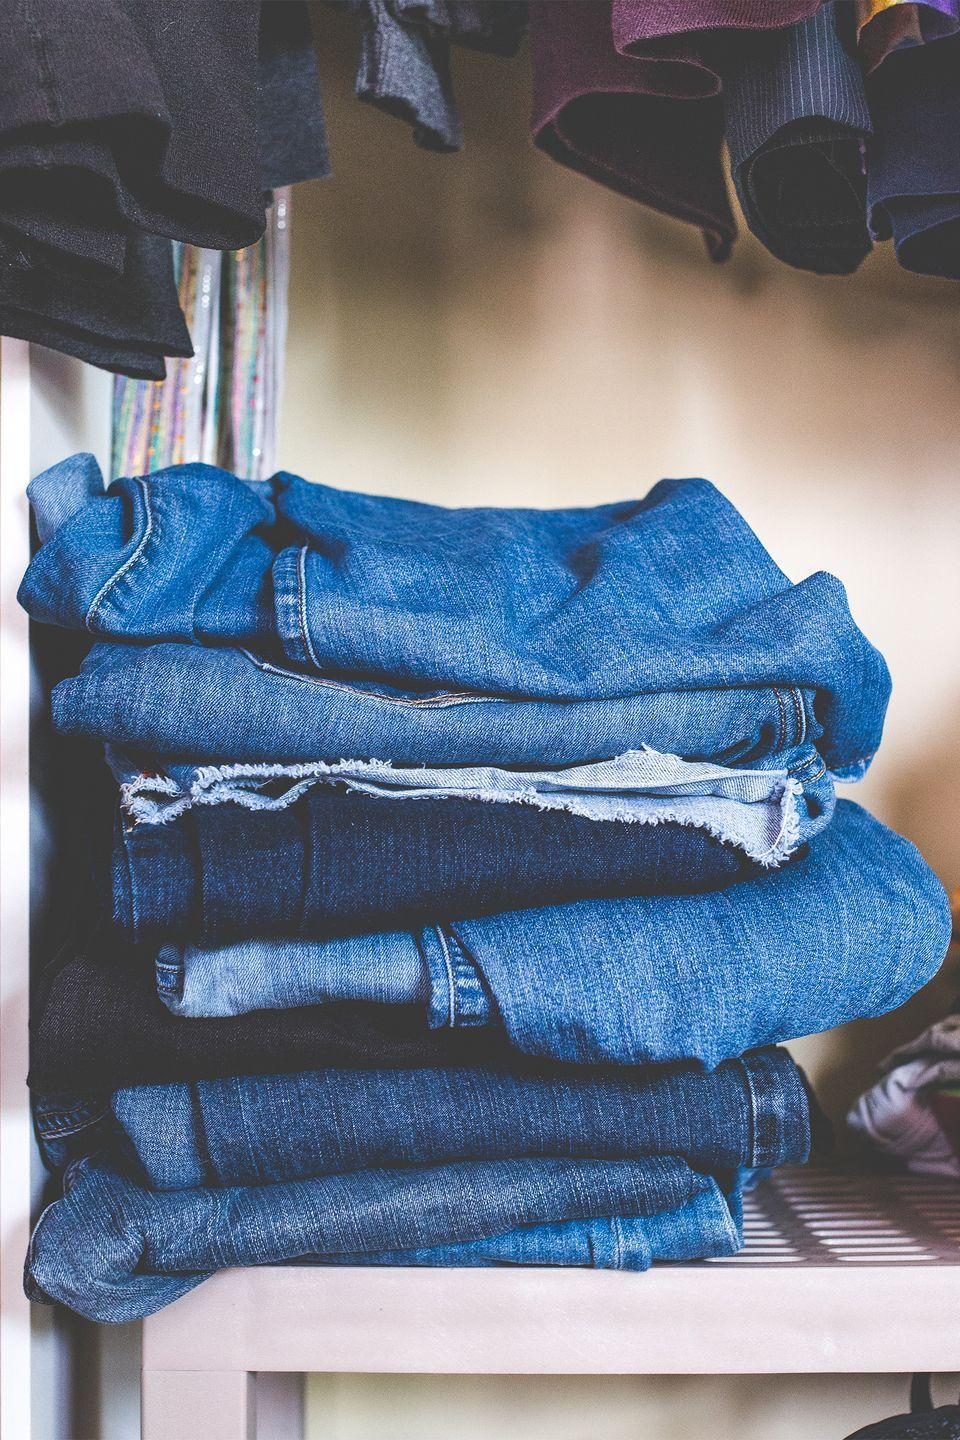 """<p>Free up drawer space by stacking jeans, sweaters, and gym clothes on closet shelves. Slip-on shelf dividers keep them from falling over.</p><p><strong><a class=""""link rapid-noclick-resp"""" href=""""https://www.amazon.com/mDesign-Divider-Organizer-Clothing-Storage/dp/B06WWGBBZZ?tag=syn-yahoo-20&ascsubtag=%5Bartid%7C10070.g.3310%5Bsrc%7Cyahoo-us"""" rel=""""nofollow noopener"""" target=""""_blank"""" data-ylk=""""slk:SHOP SHELF DIVIDERS"""">SHOP SHELF DIVIDERS</a></strong></p>"""